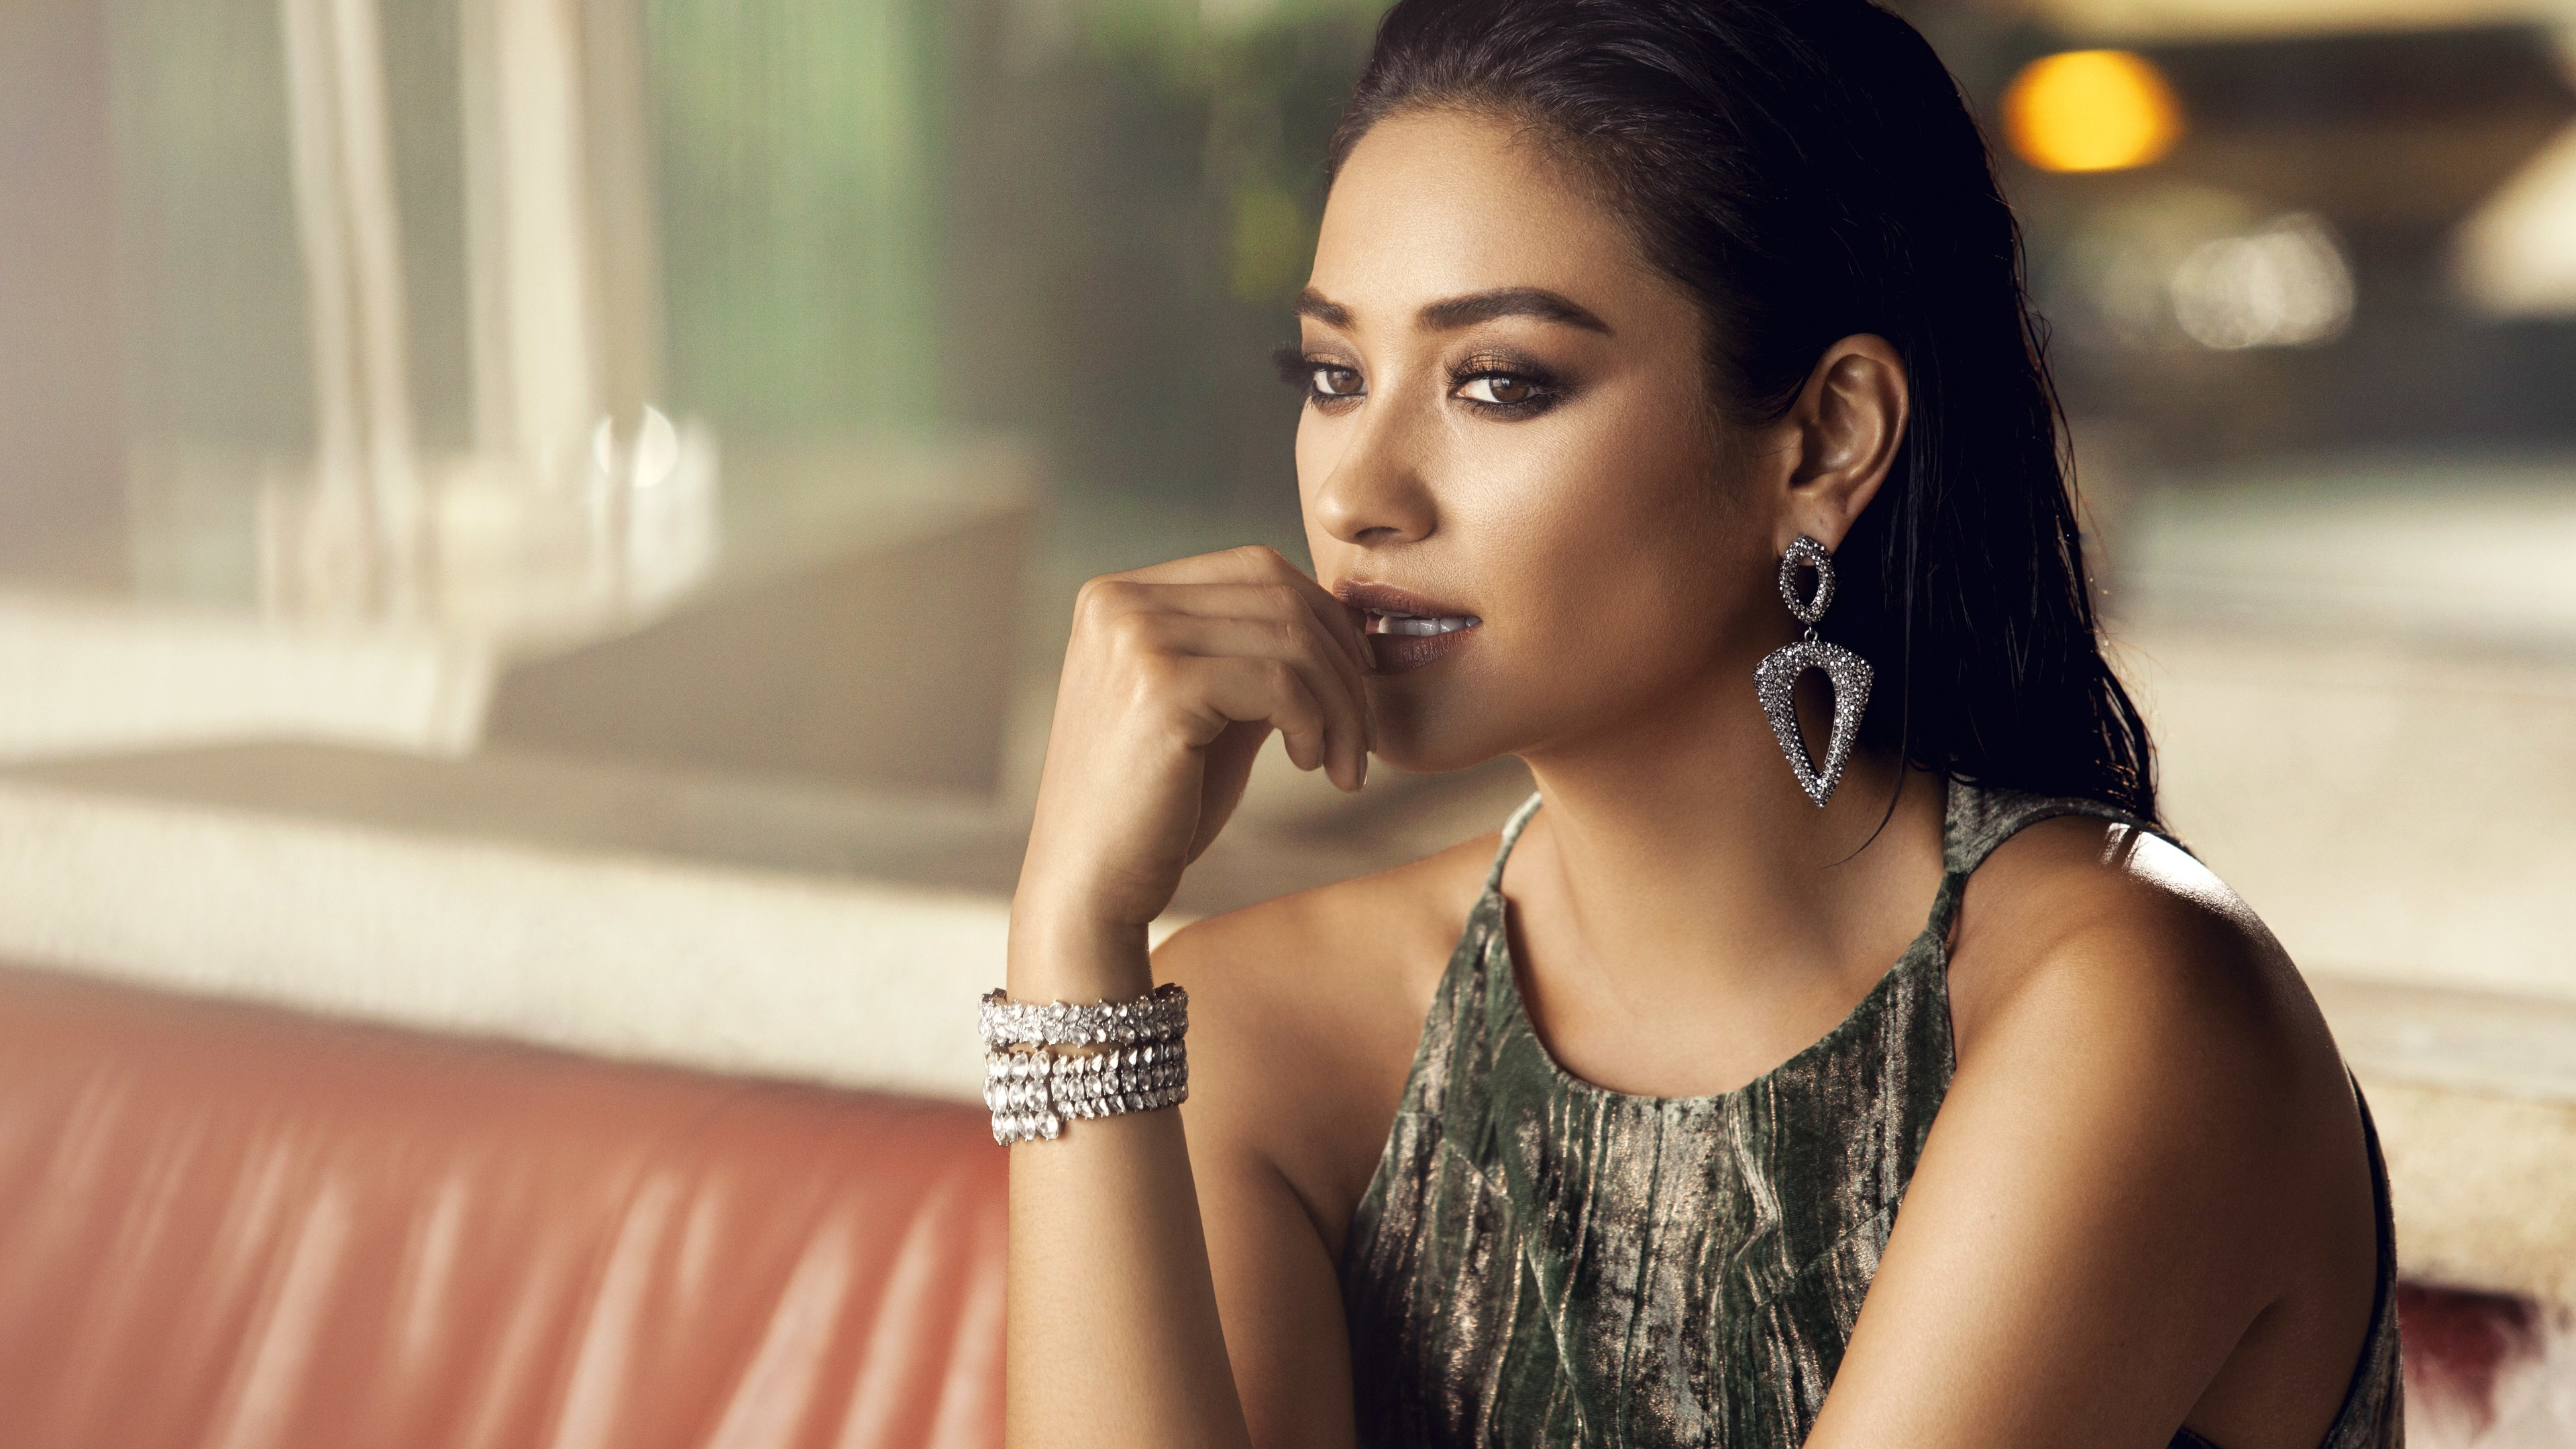 shay mitchell 5k 1536857530 - Shay Mitchell 5k - shay mitchell wallpapers, girls wallpapers, celebrities wallpapers, 5k wallpapers